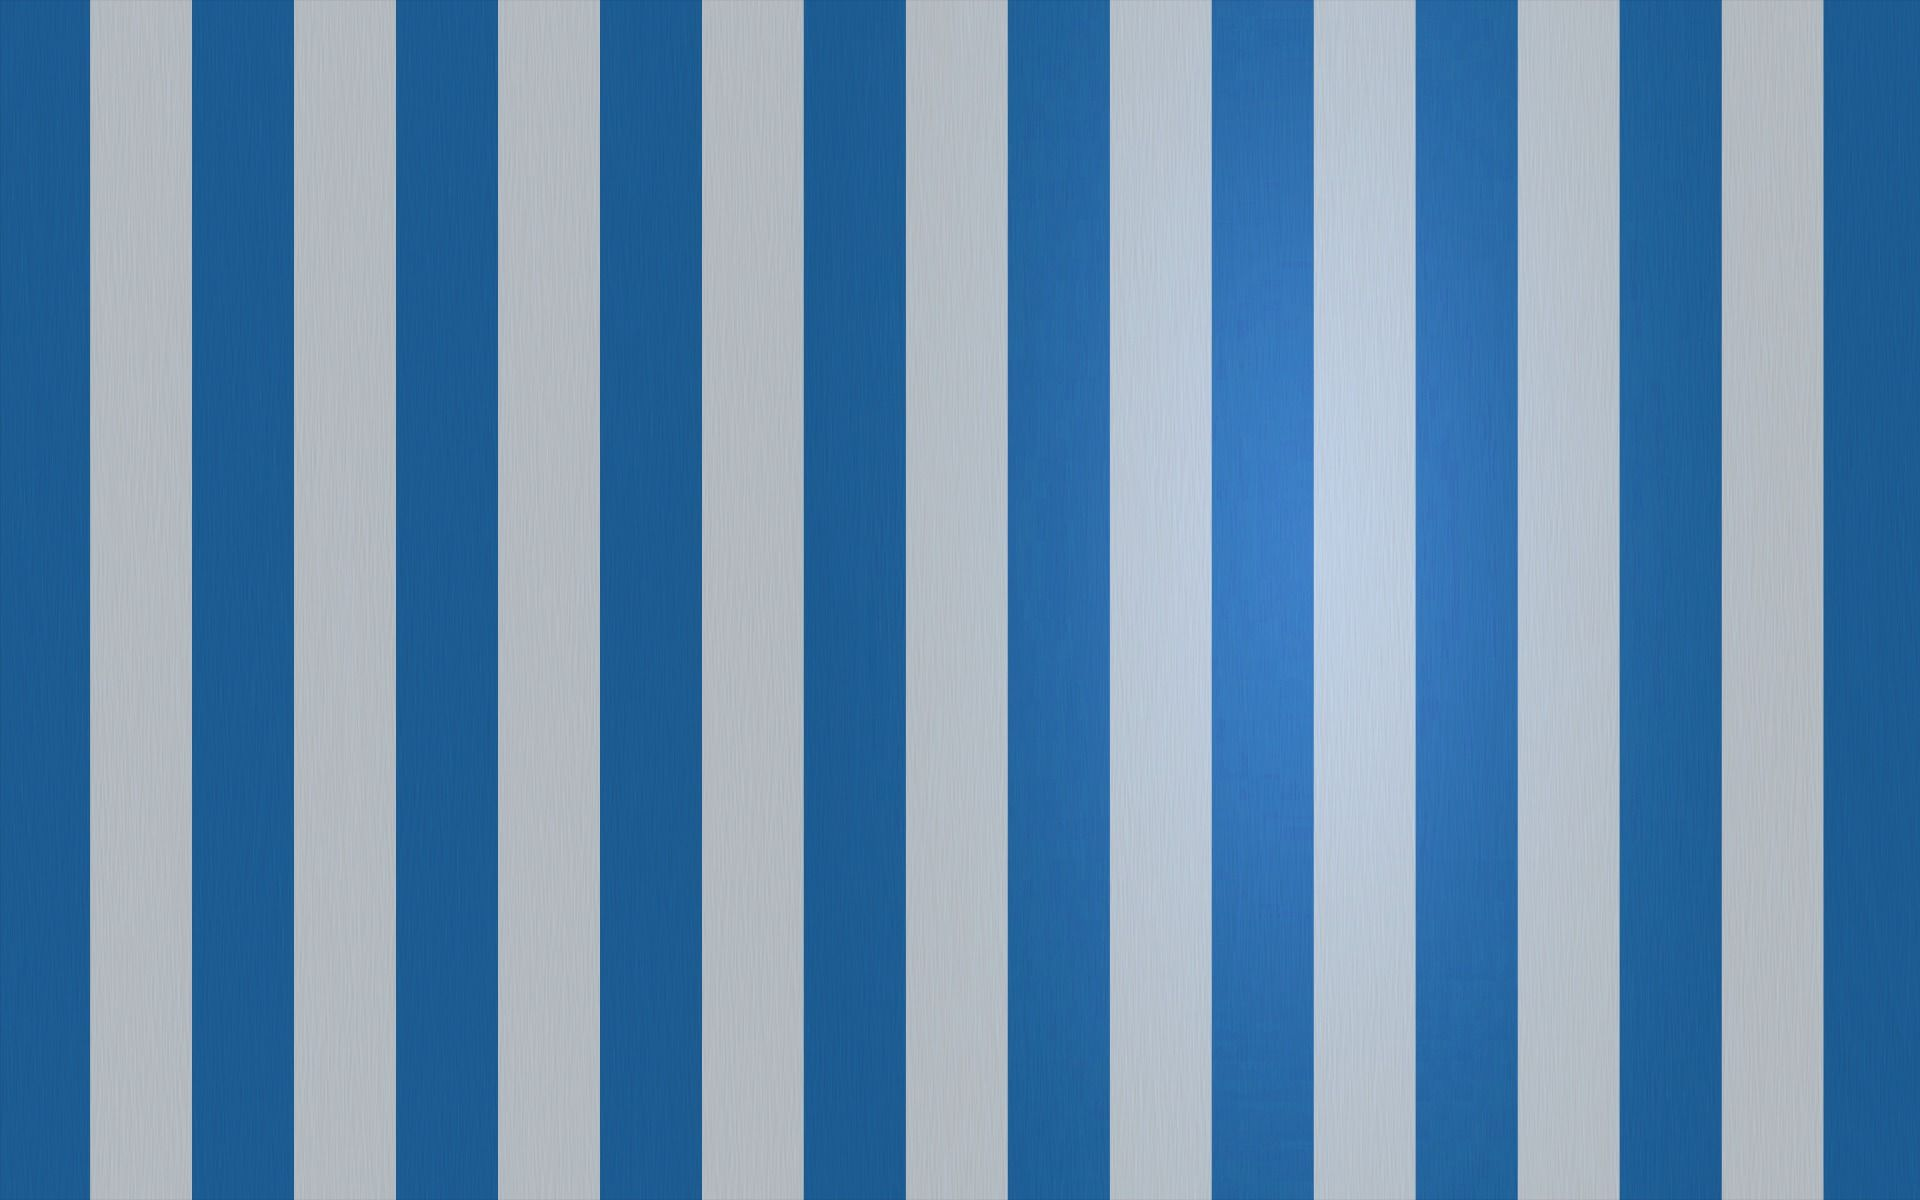 Blue And White Striped Wallpapers Top Free Blue And White